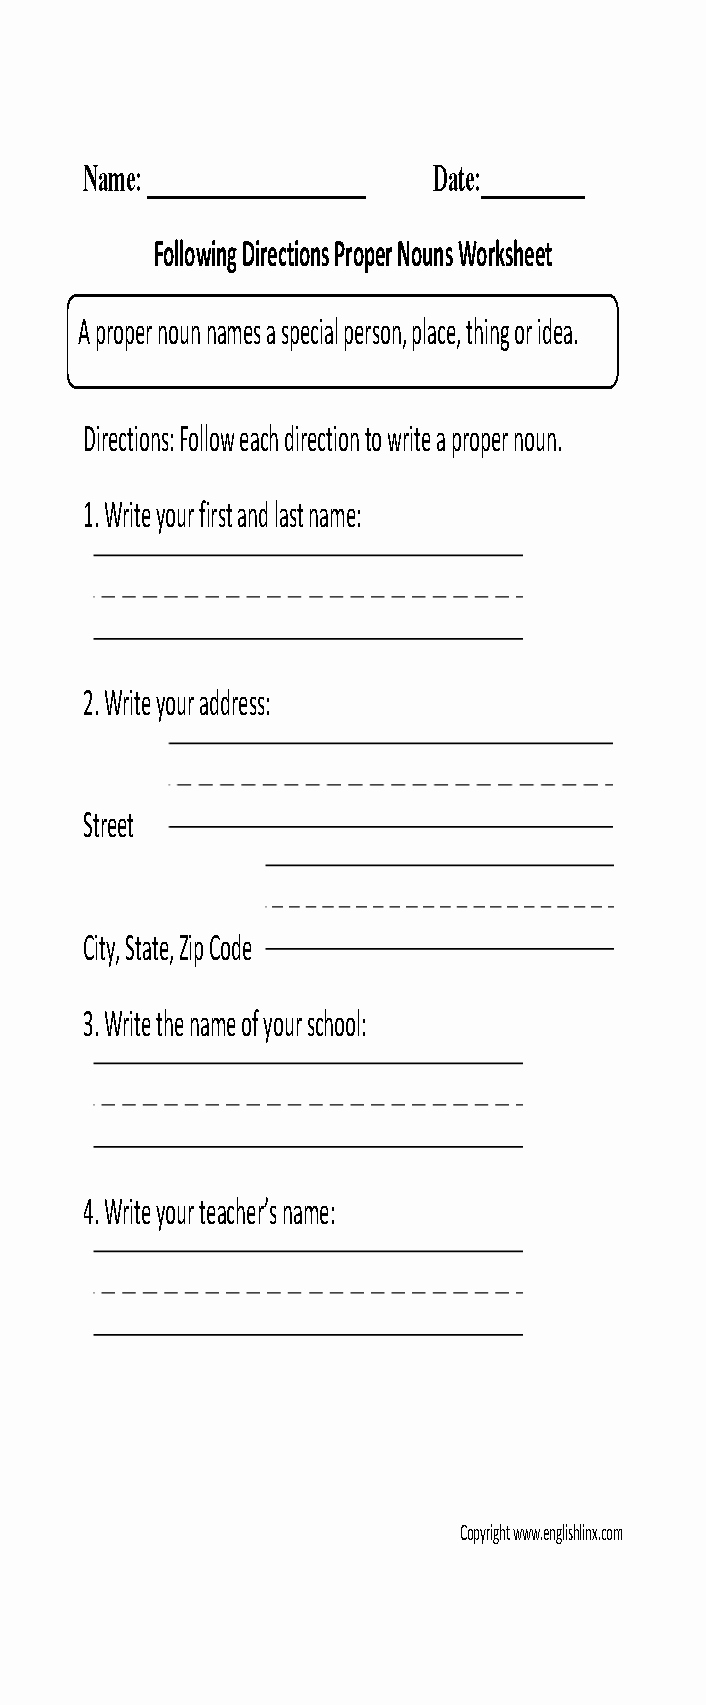 Proper Nouns Worksheet 2nd Grade Awesome 17 Best Of Prefixes and Suffixes Worksheets 4th